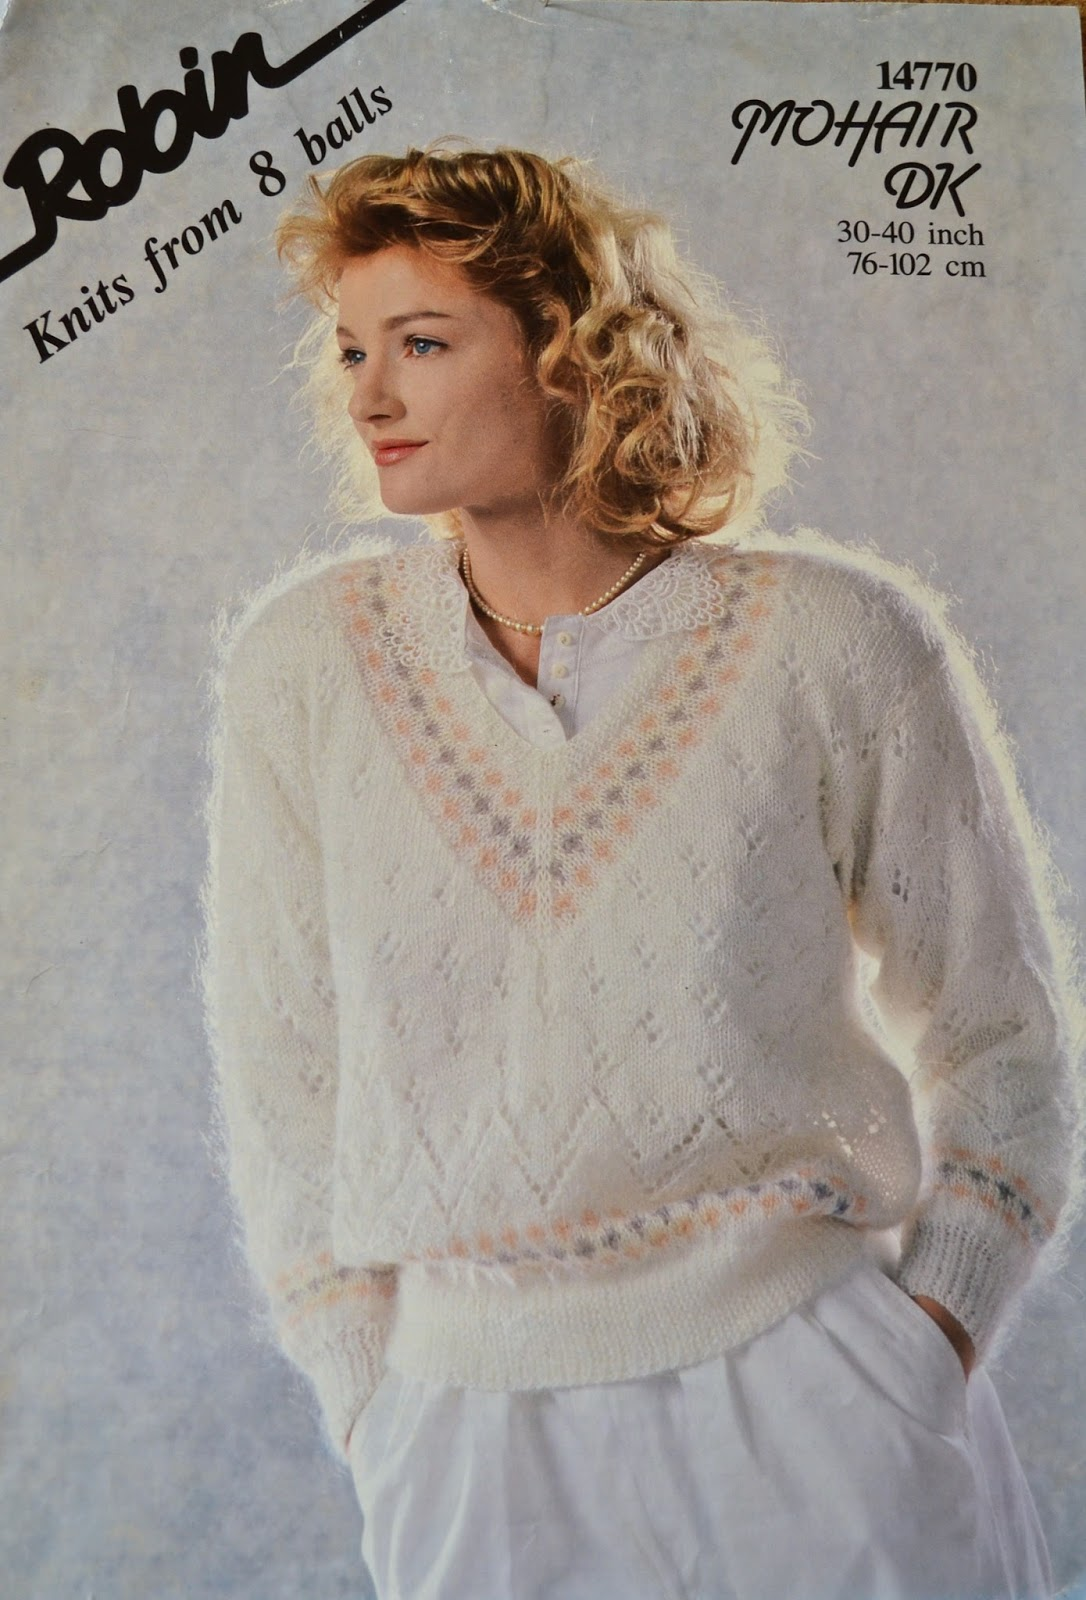 92dae5e901d5 Vintage 1980s Knitting Pattern - Robin Ladies  Mohair Sweater Knitting  Pattern